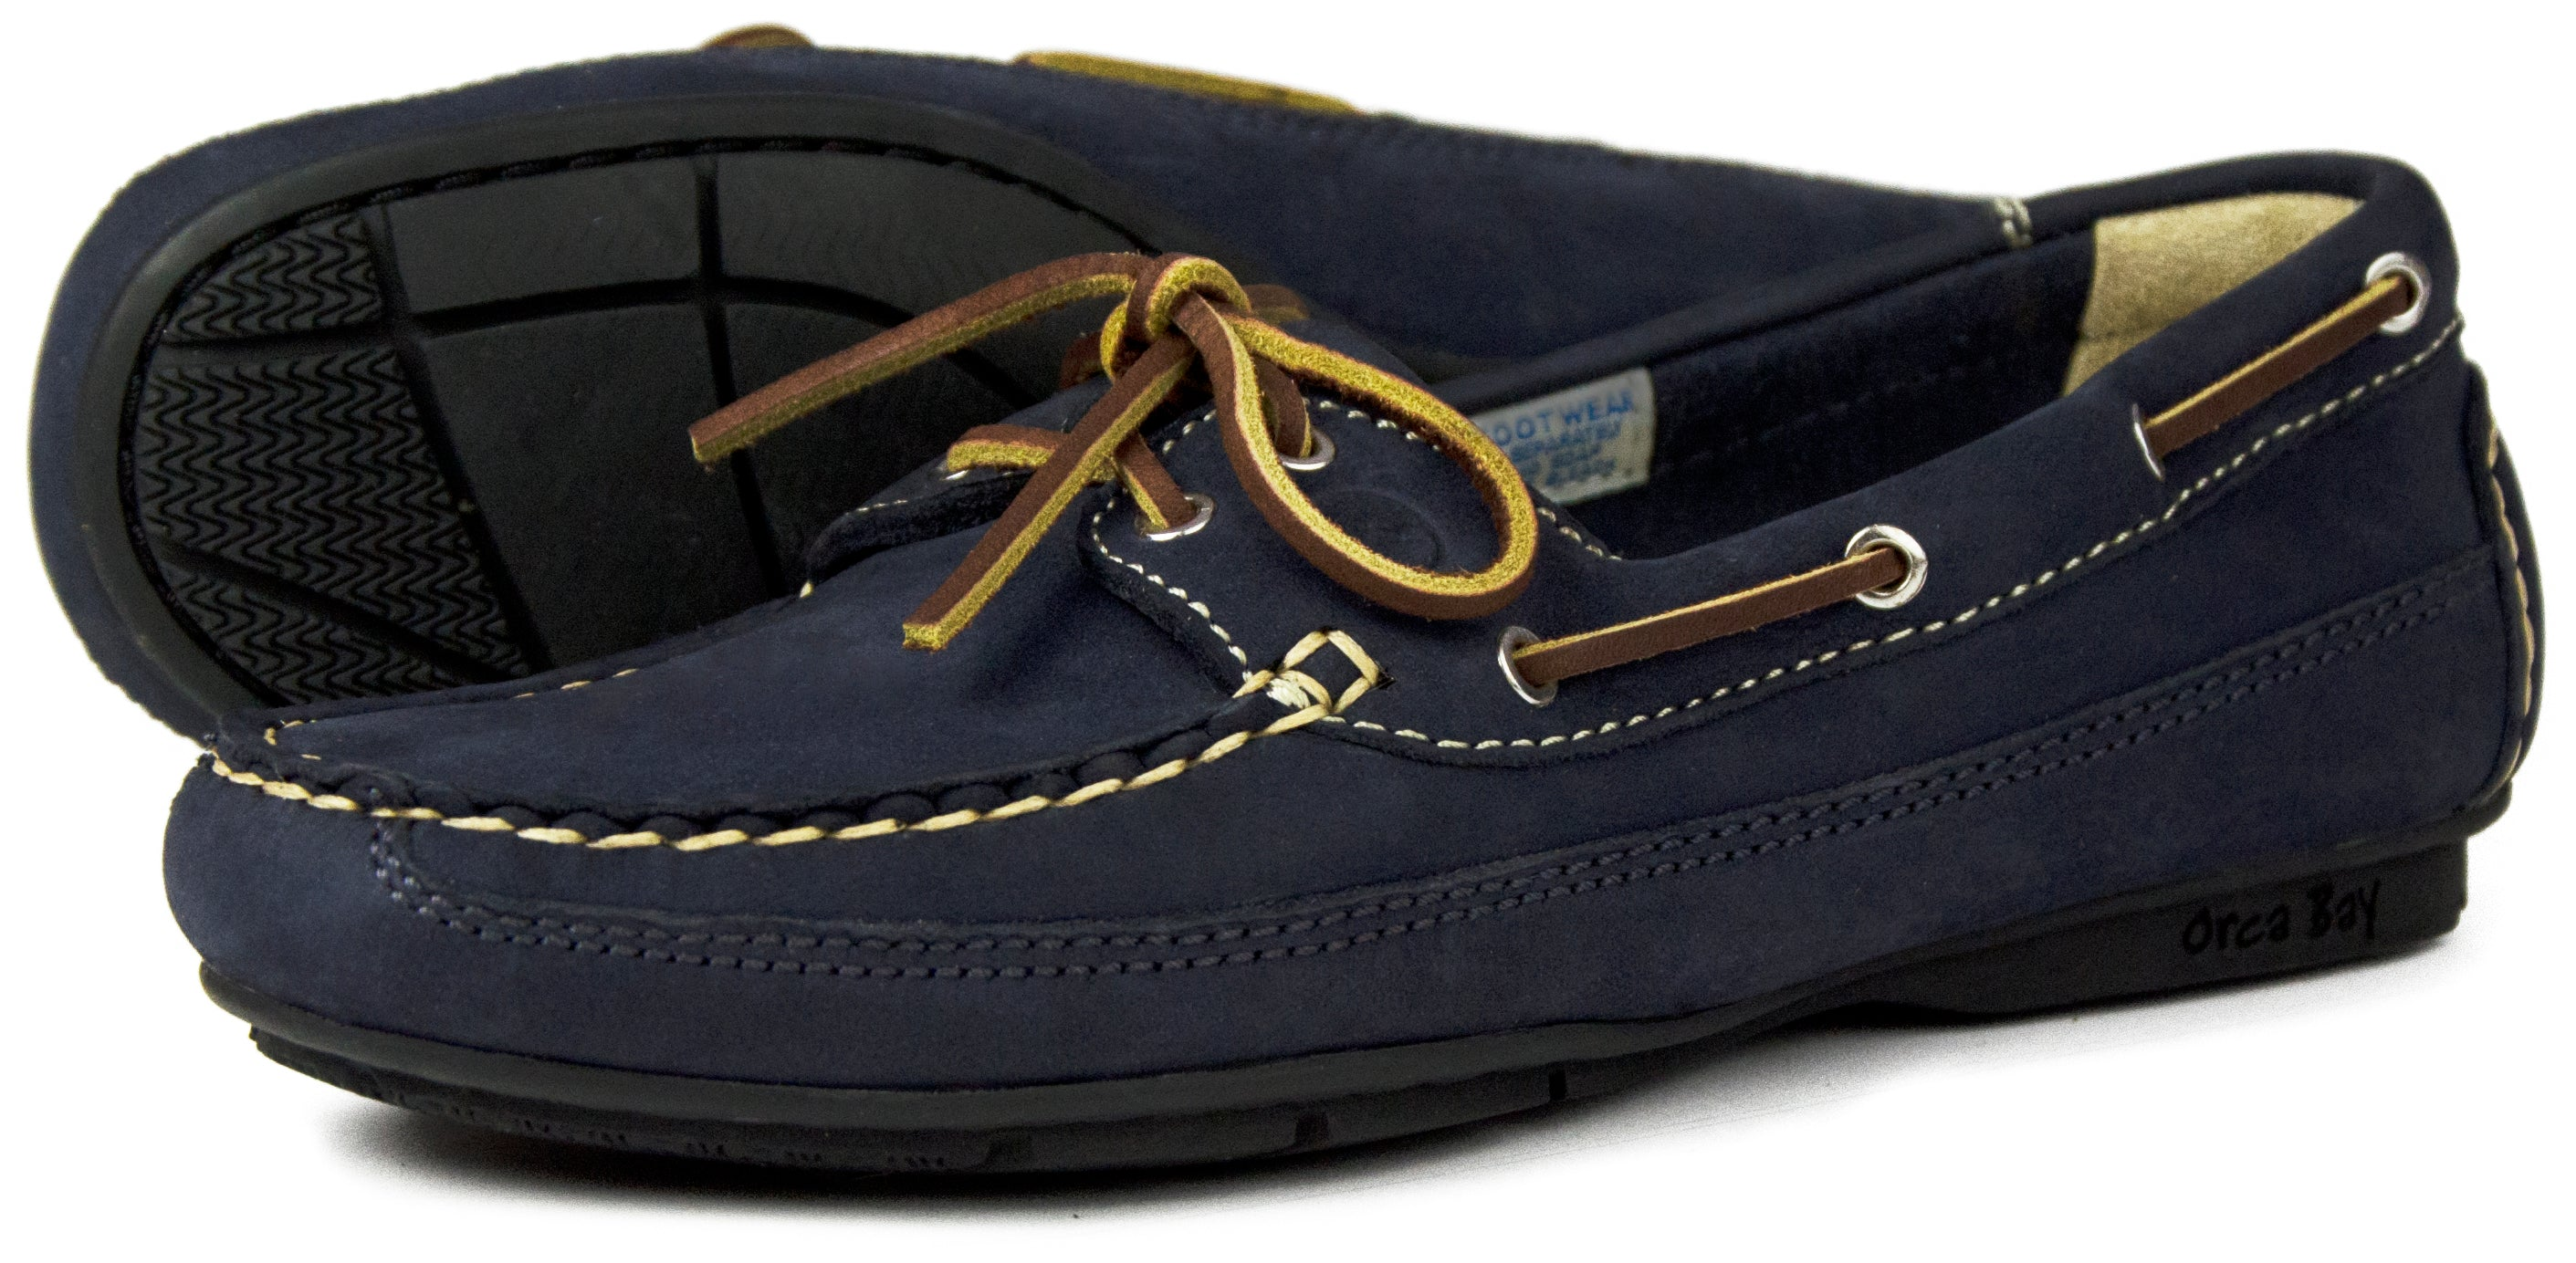 Orca Bay Bahamas Deck Shoe for Ladies in Indigo